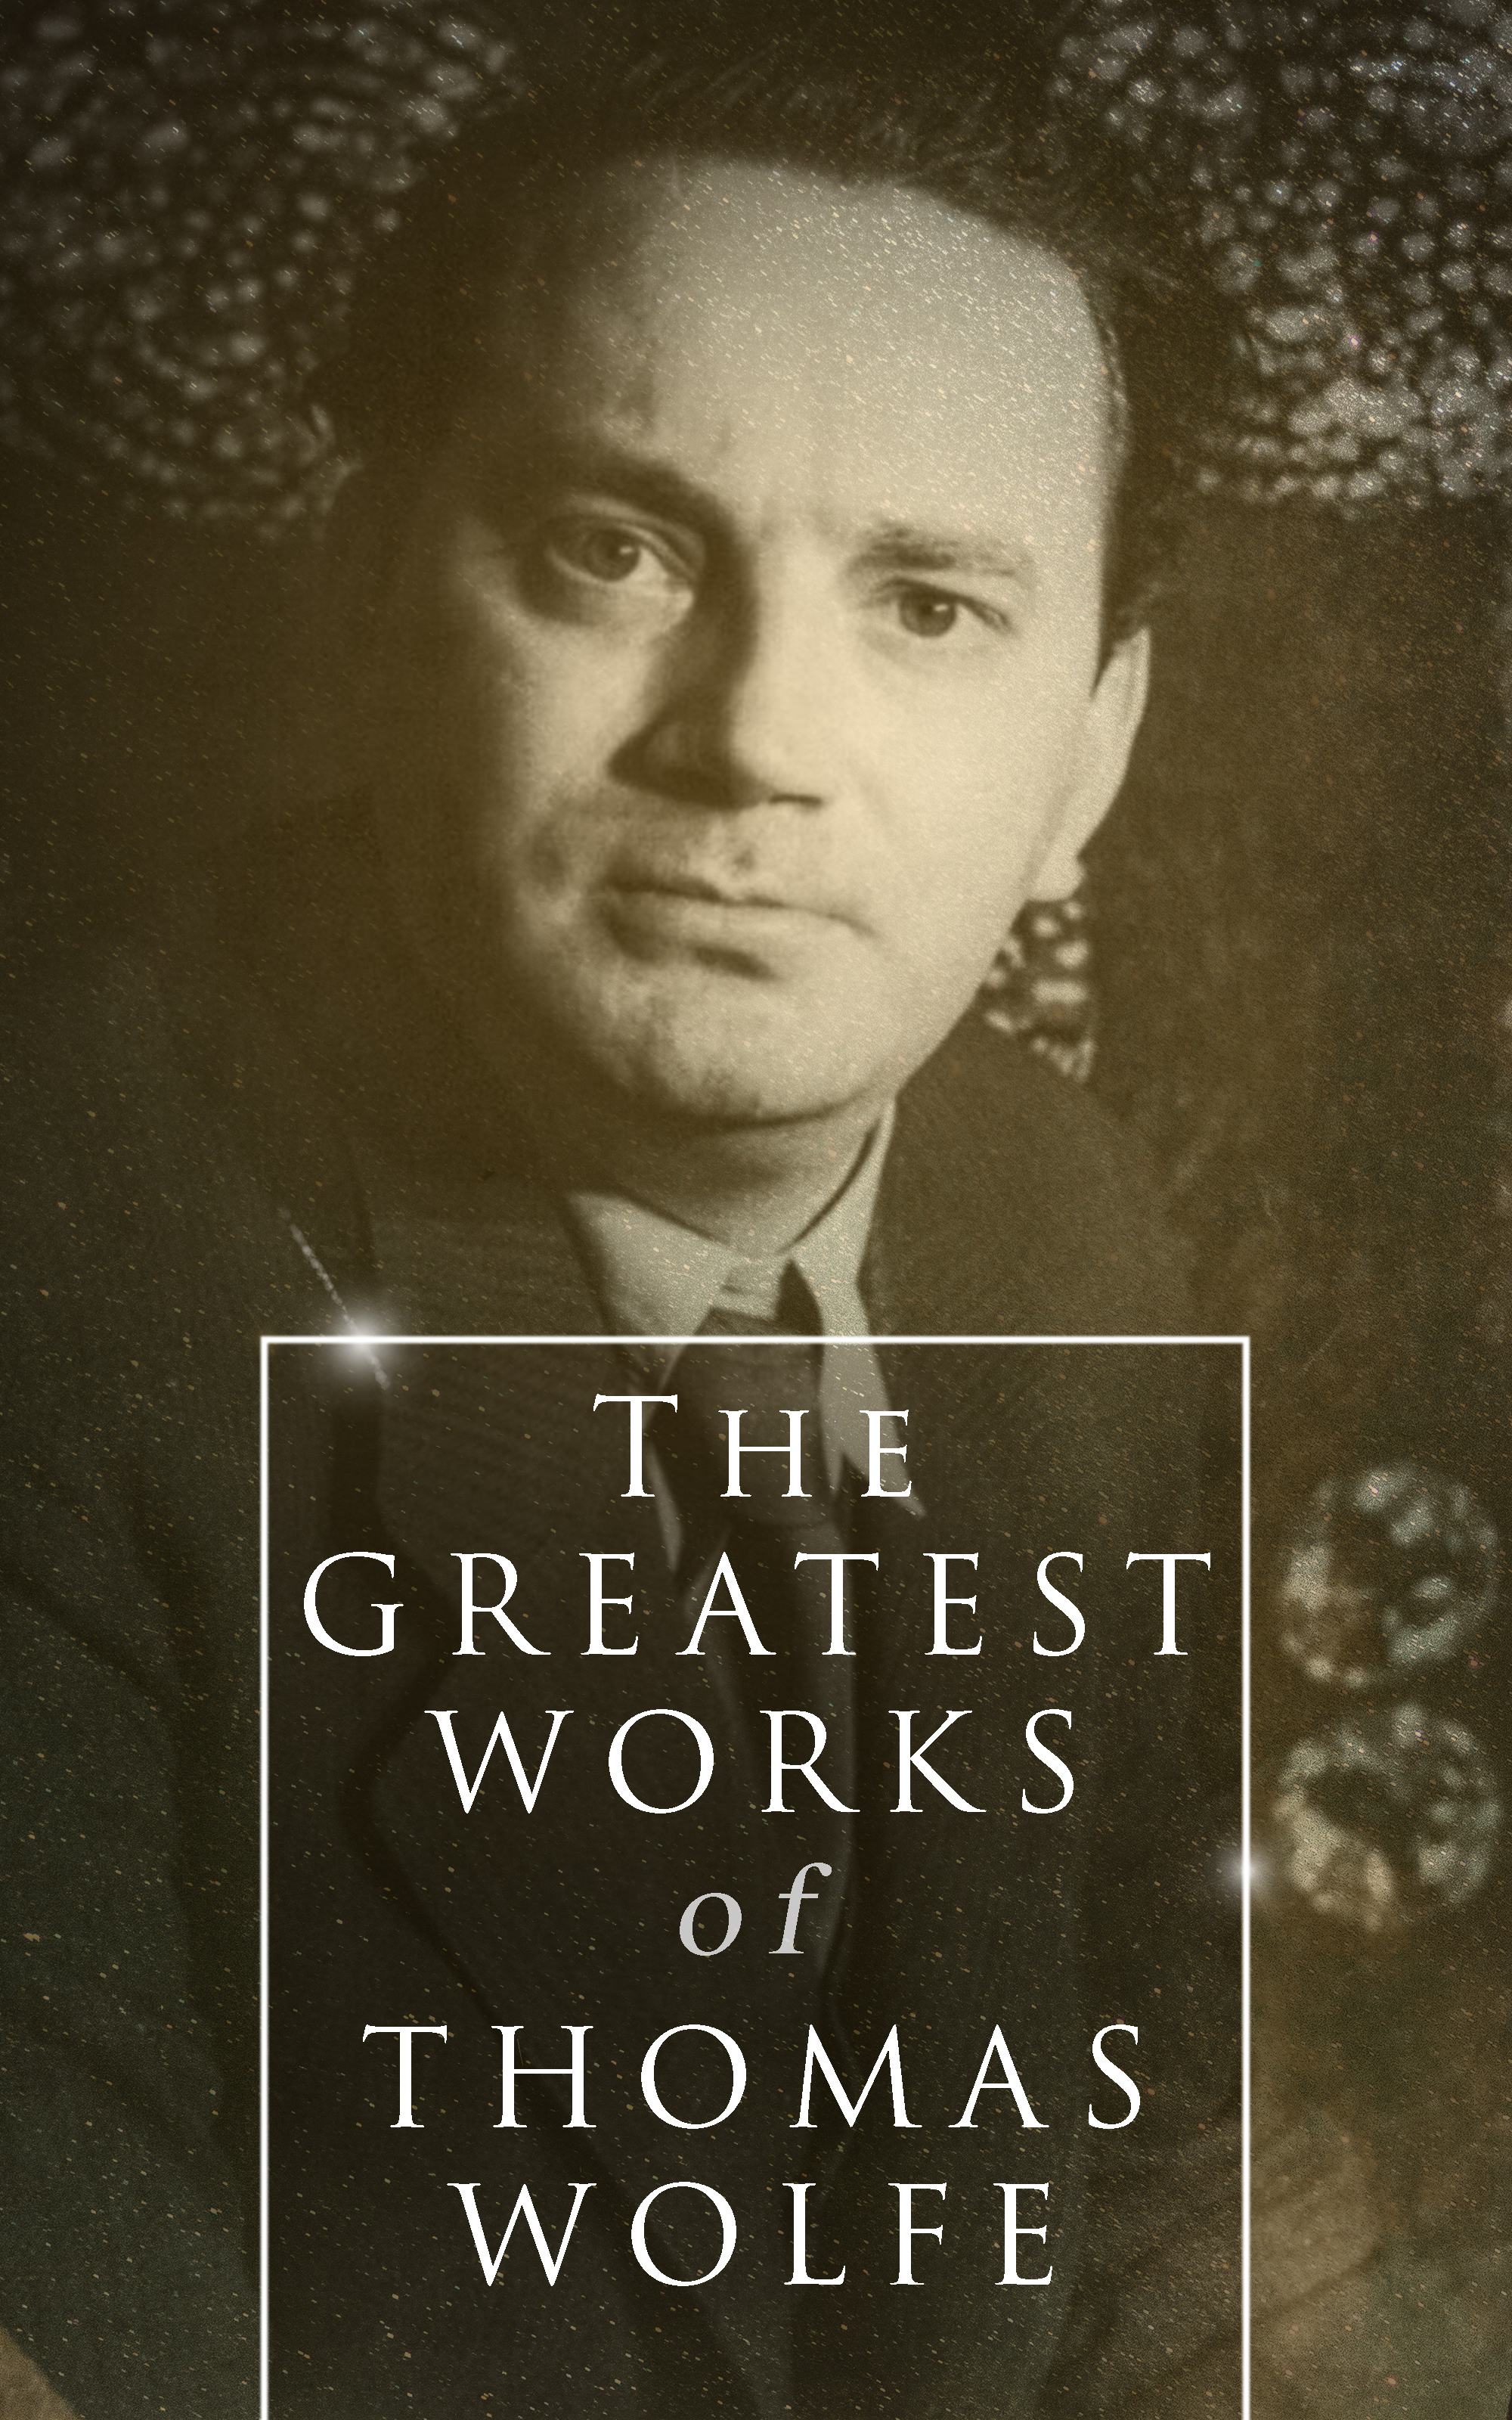 Thomas Wolfe The Greatest Works of Thomas Wolfe thomas d worrall the grain trust exposed